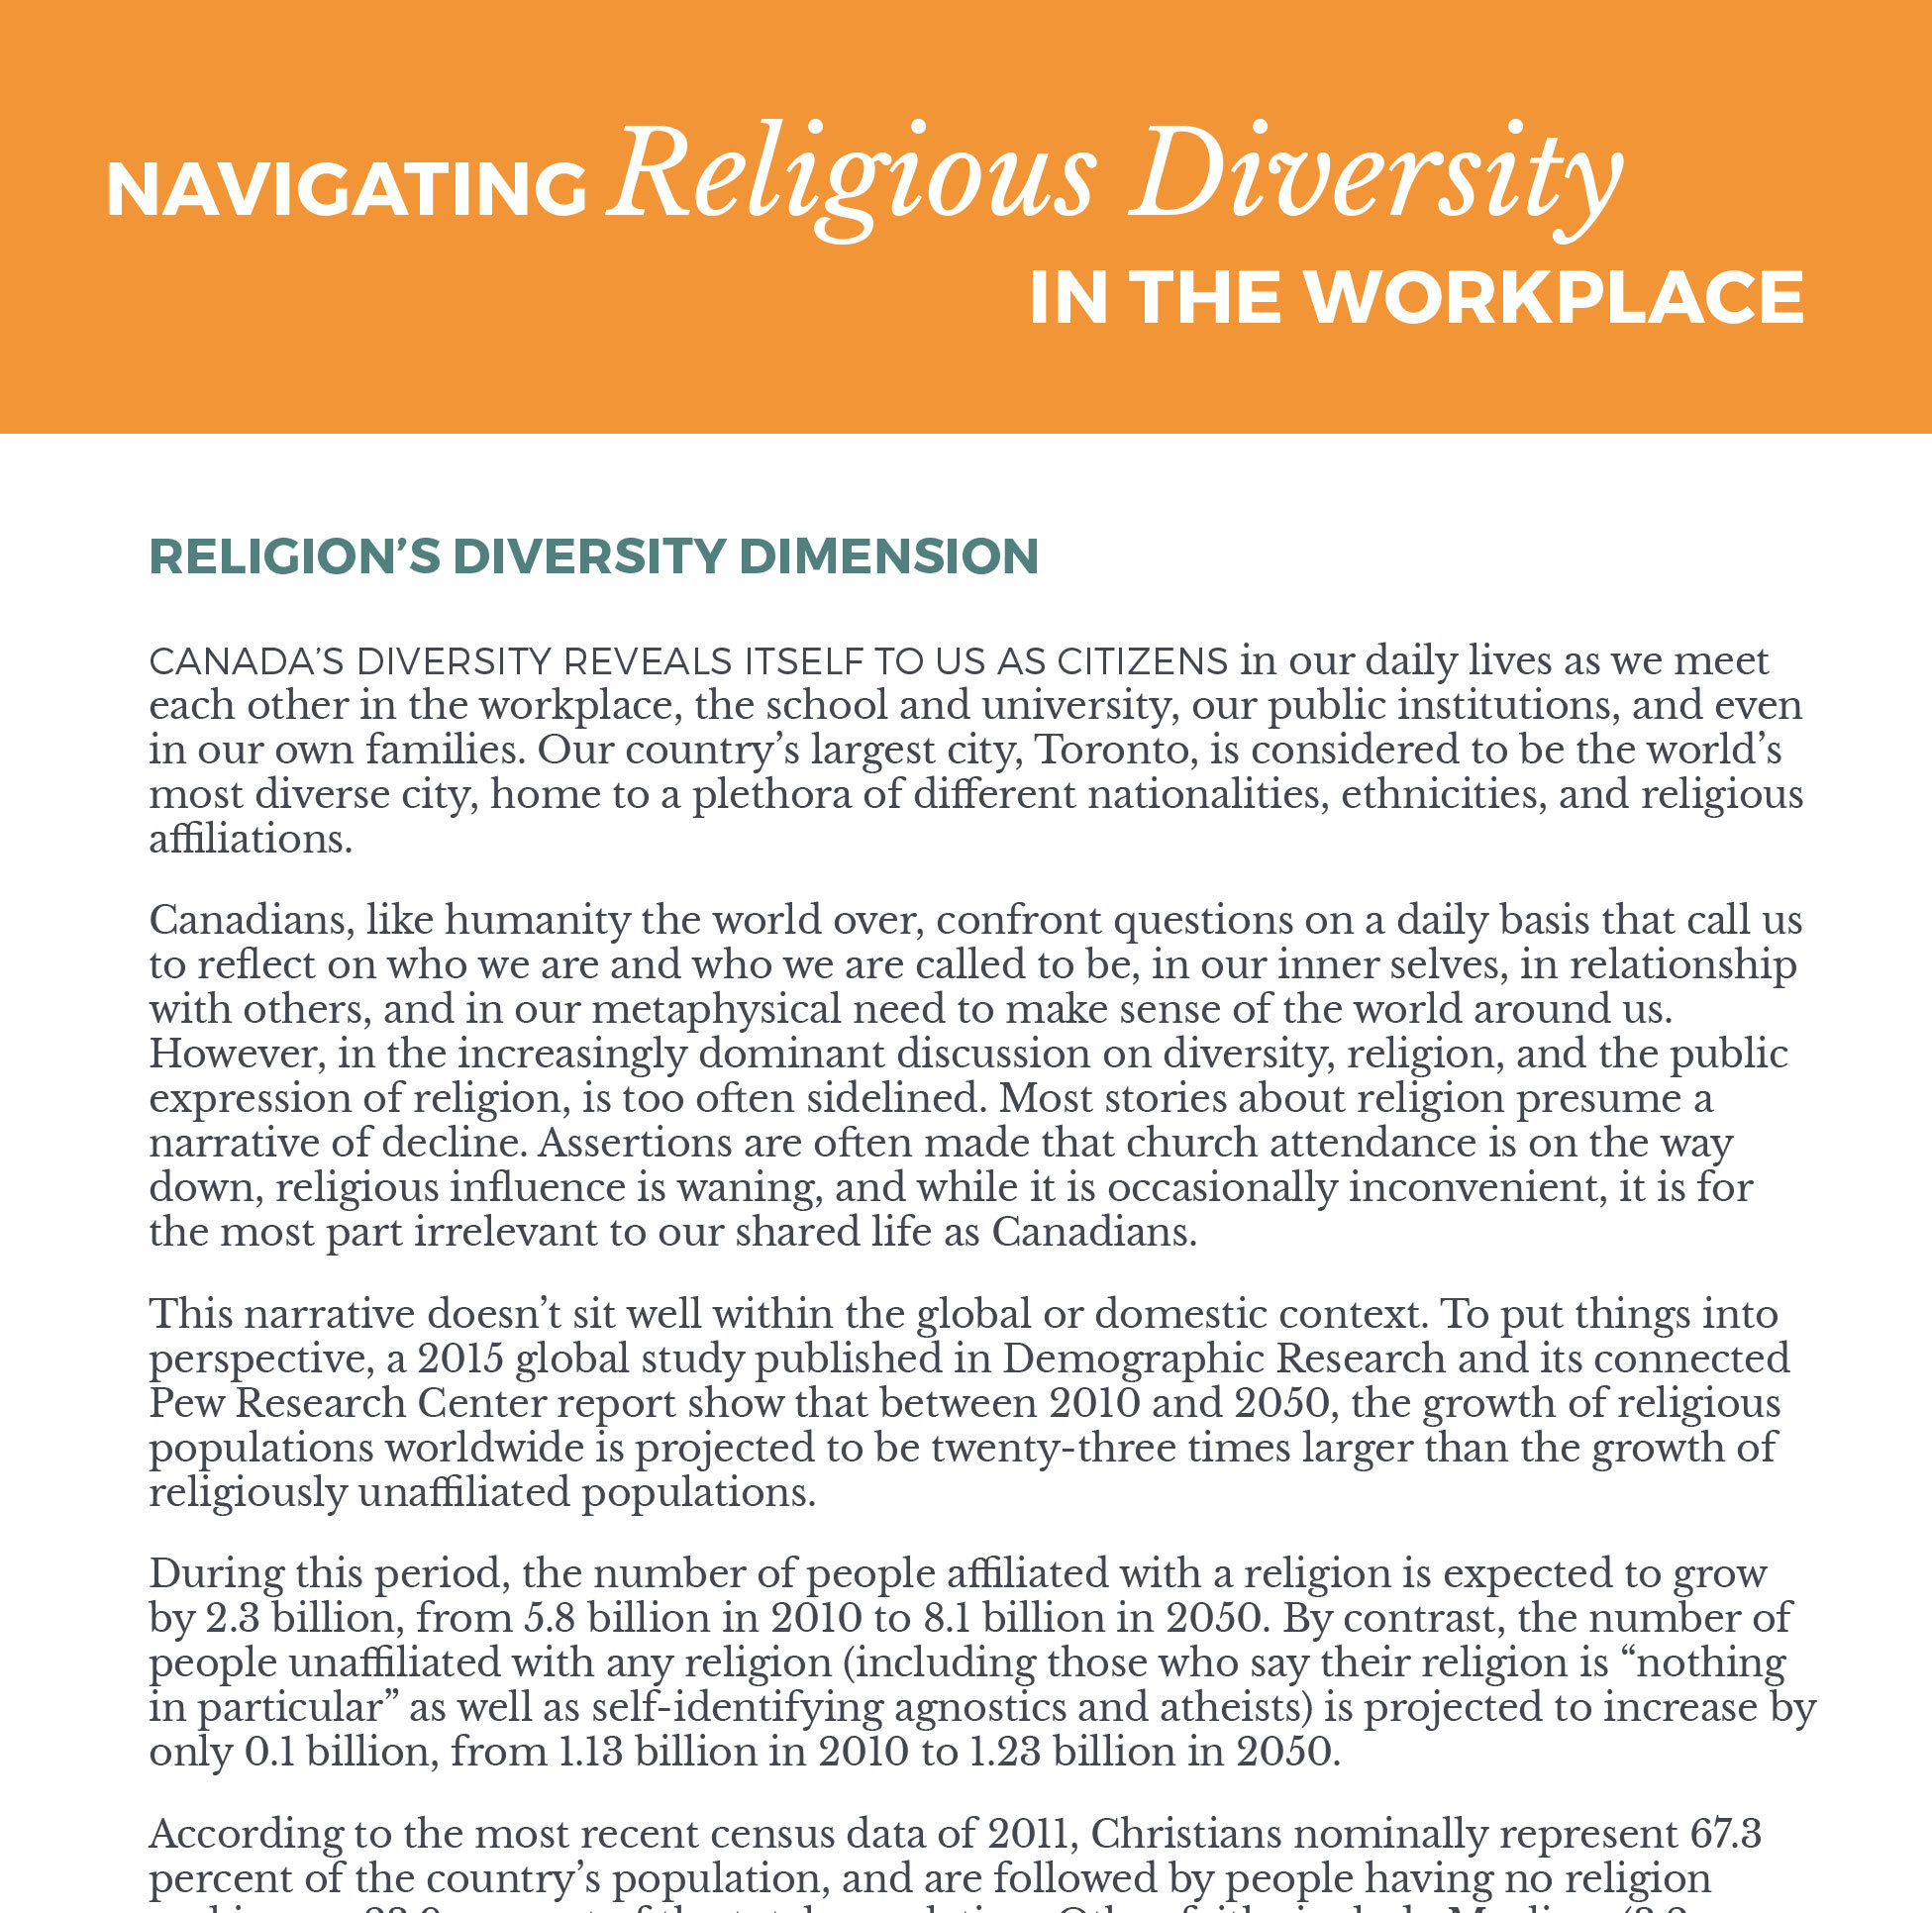 Navigating Religious Diversity in the Workplace